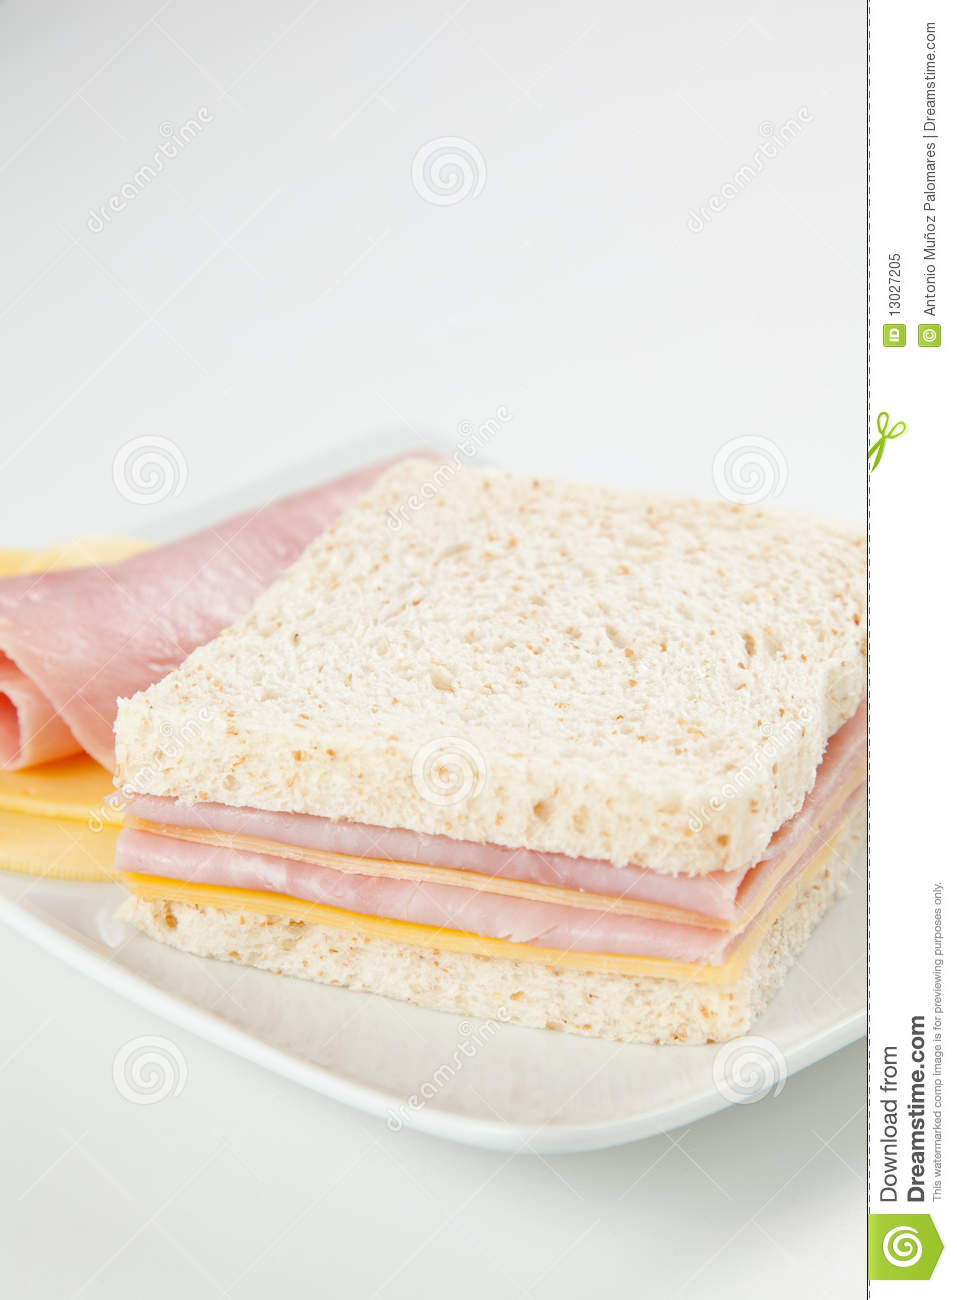 Delicious Ham And Cheese Sandwich Royalty Free Stock Photo ...